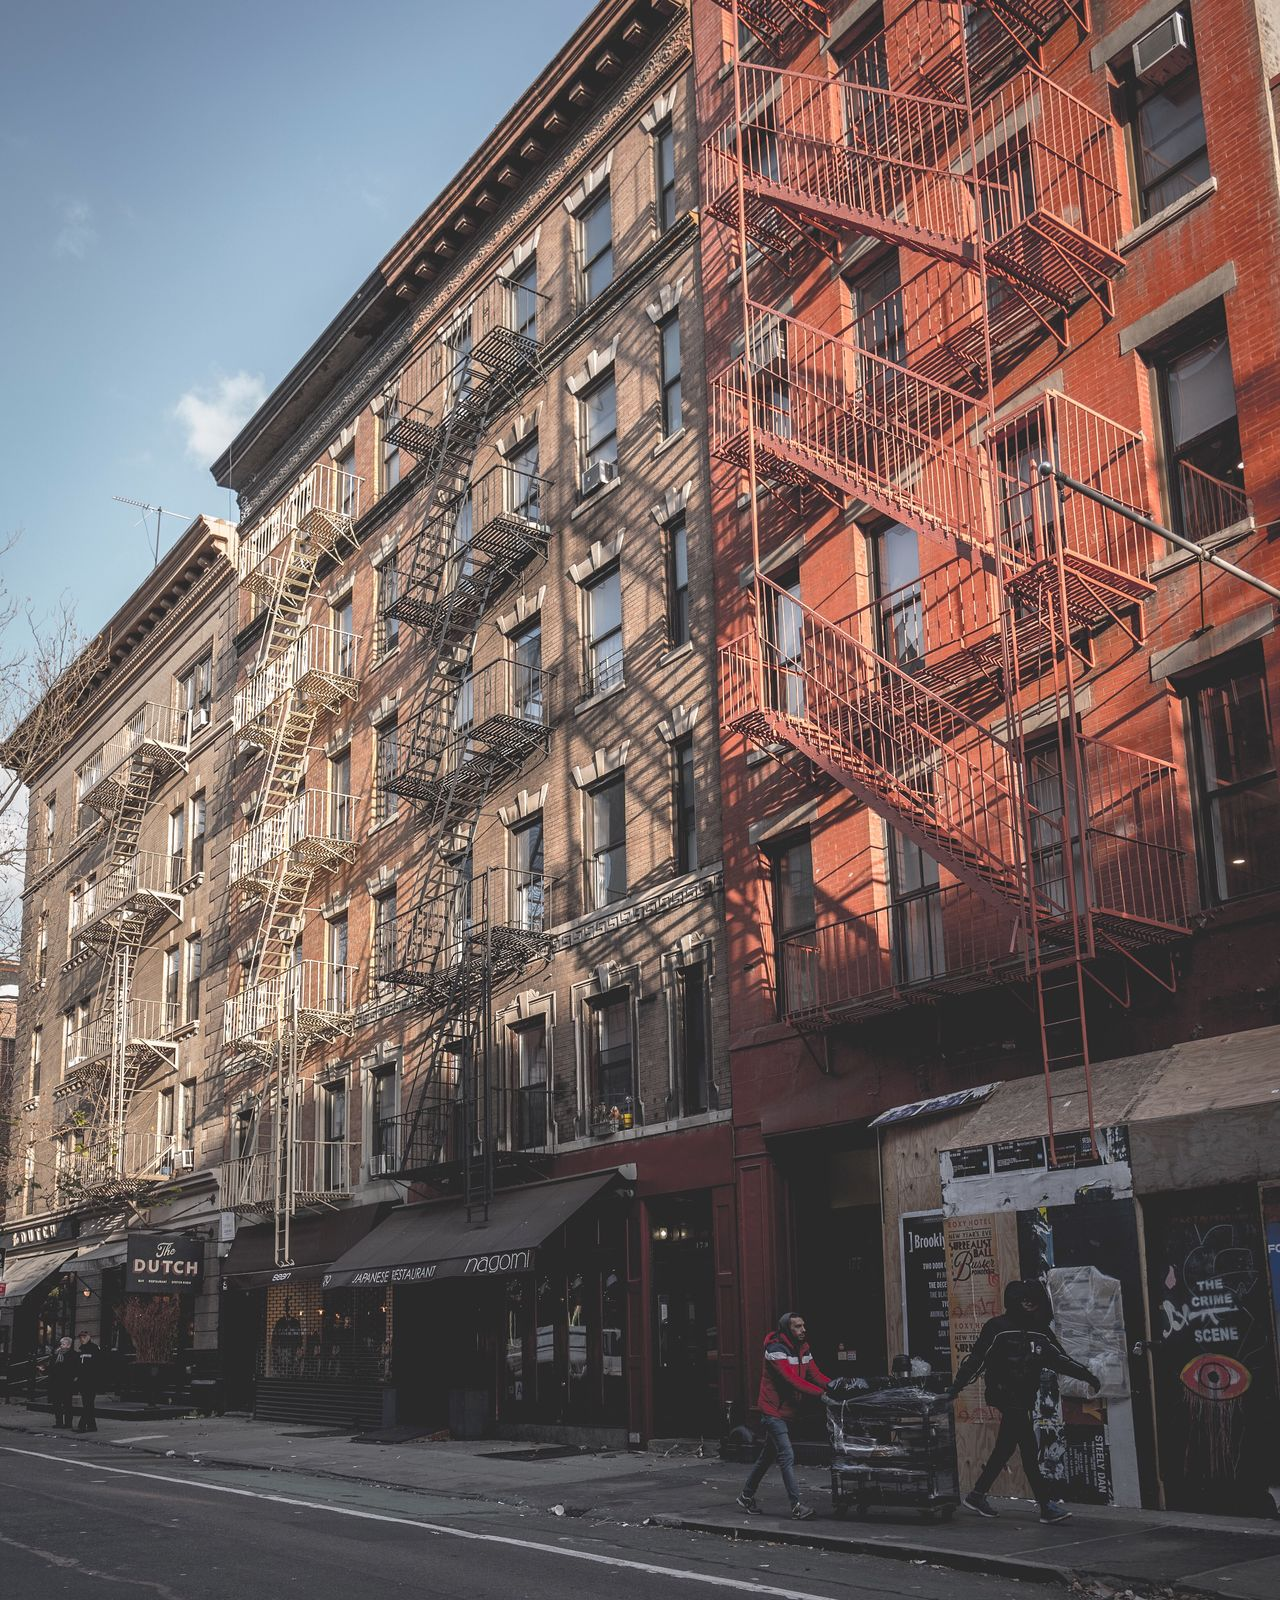 Architecture Building Exterior Built Structure City Real People Outdoors Day Women Men Sky One Person Fire Escape